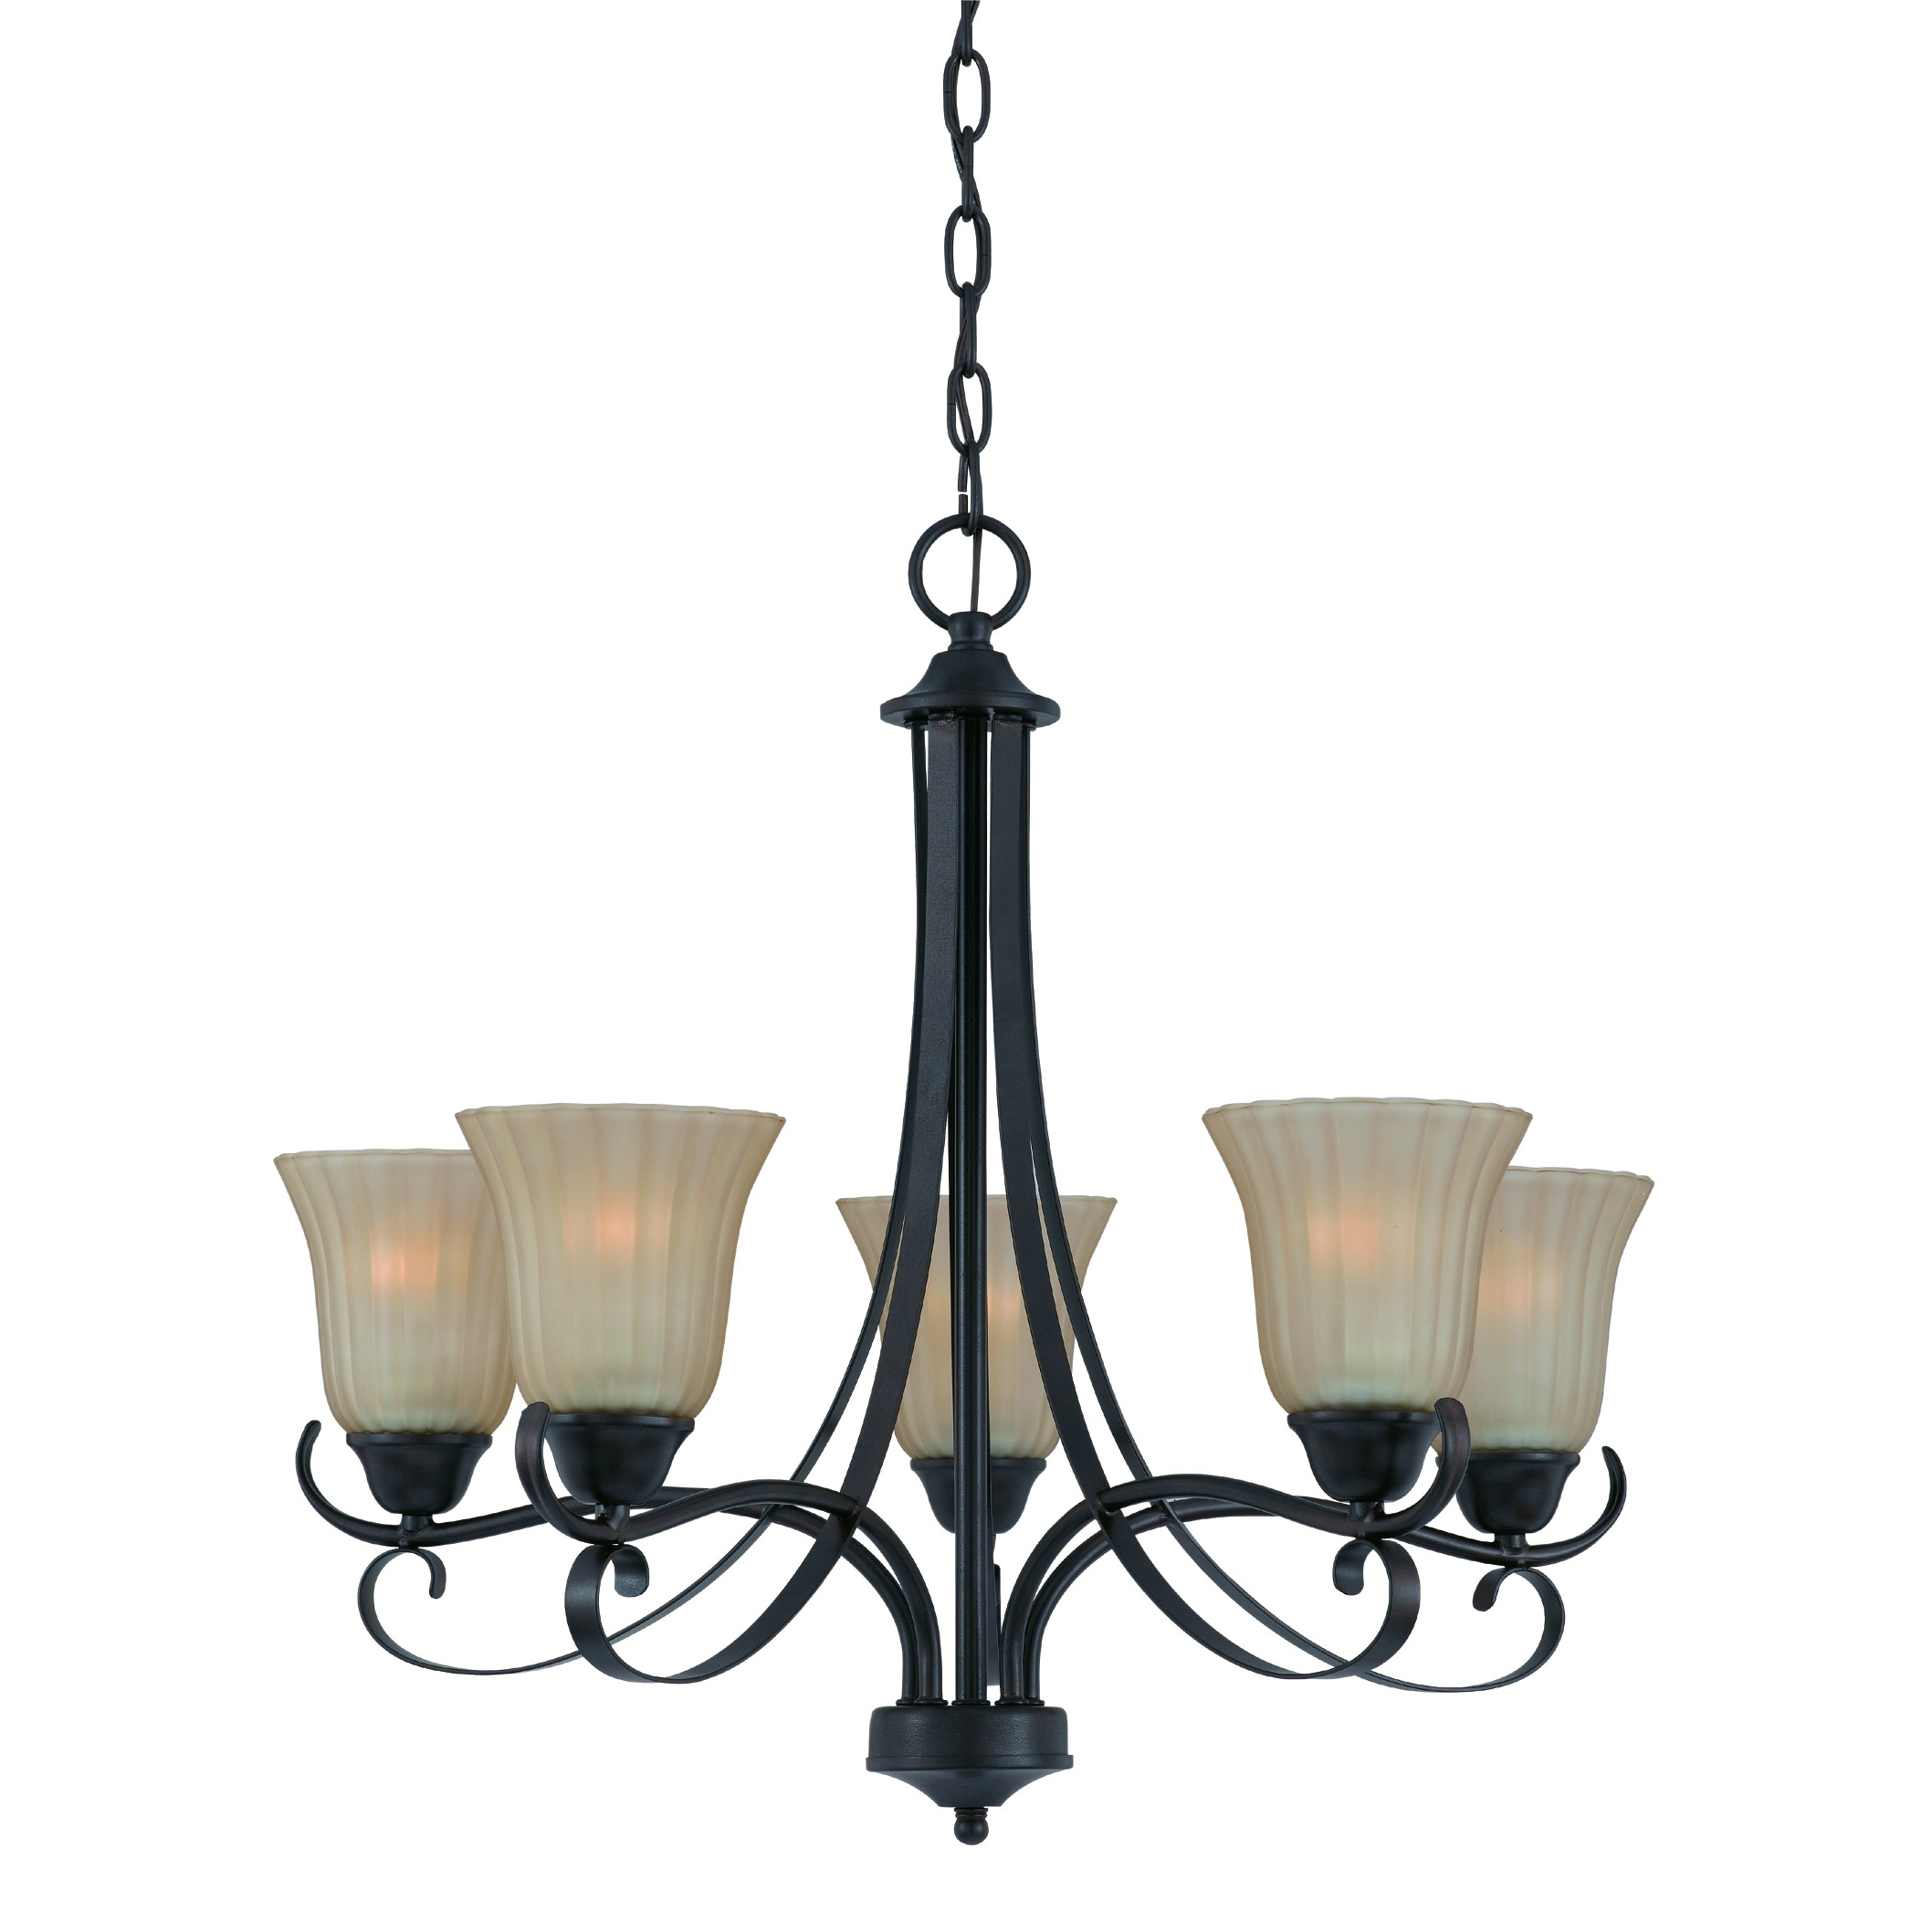 Traditional 5 light Chandelier in Bronze finish